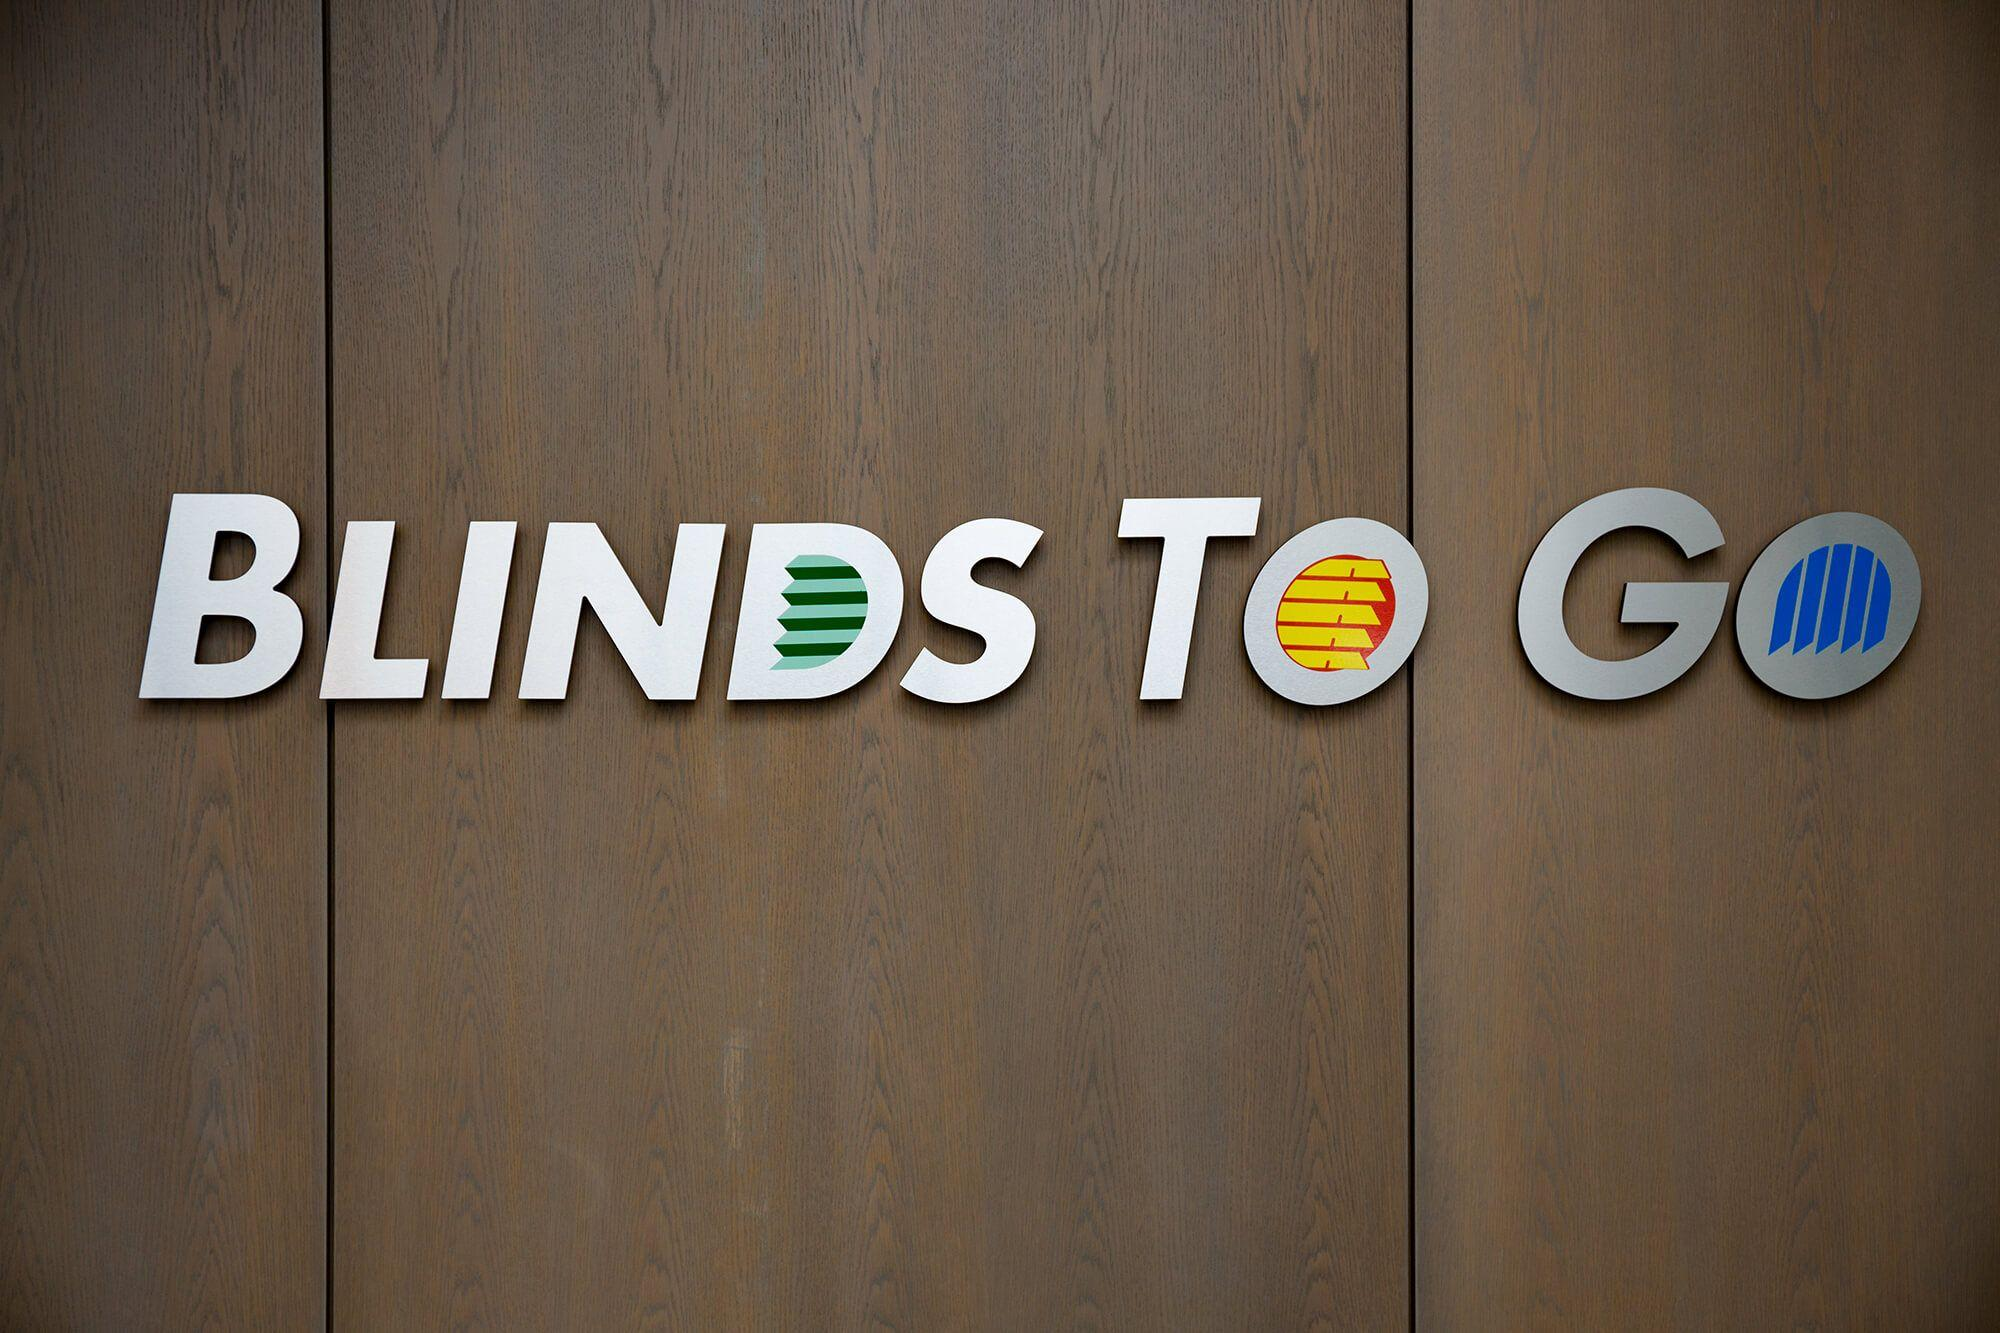 Blinds To Go logo on wood background.